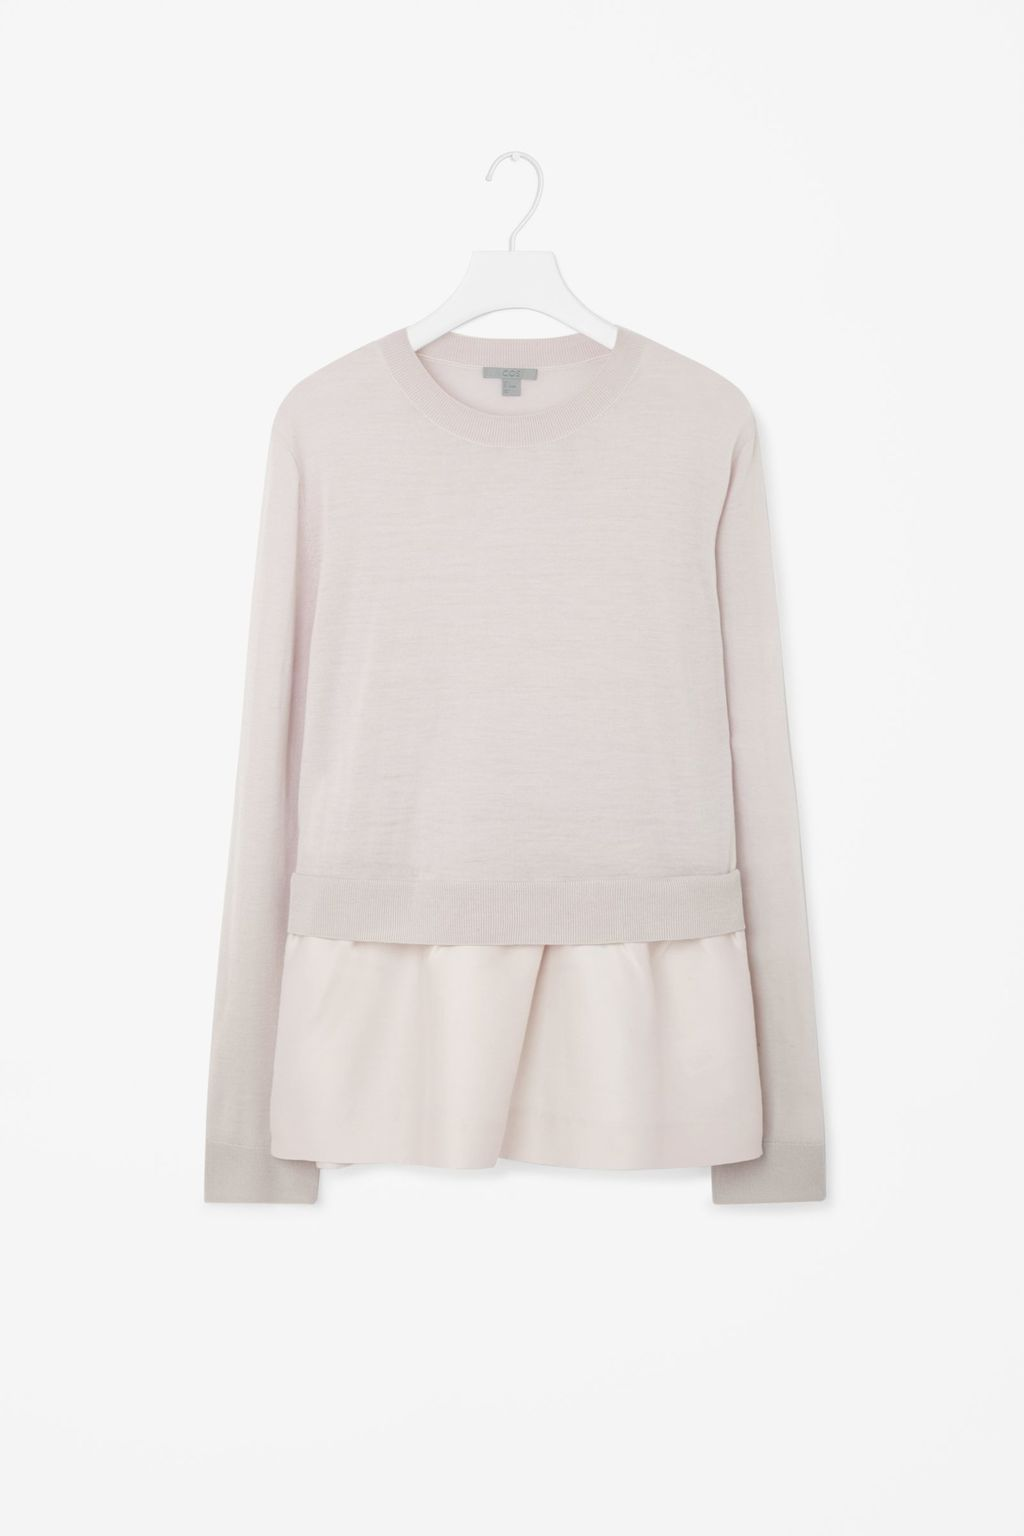 Knitted Top With Contrast Skirt - neckline: round neck; pattern: plain; style: shirt; predominant colour: ivory/cream; occasions: casual, creative work; length: standard; fibres: wool - 100%; fit: body skimming; sleeve length: long sleeve; sleeve style: standard; texture group: knits/crochet; pattern type: knitted - fine stitch; season: a/w 2015; wardrobe: basic